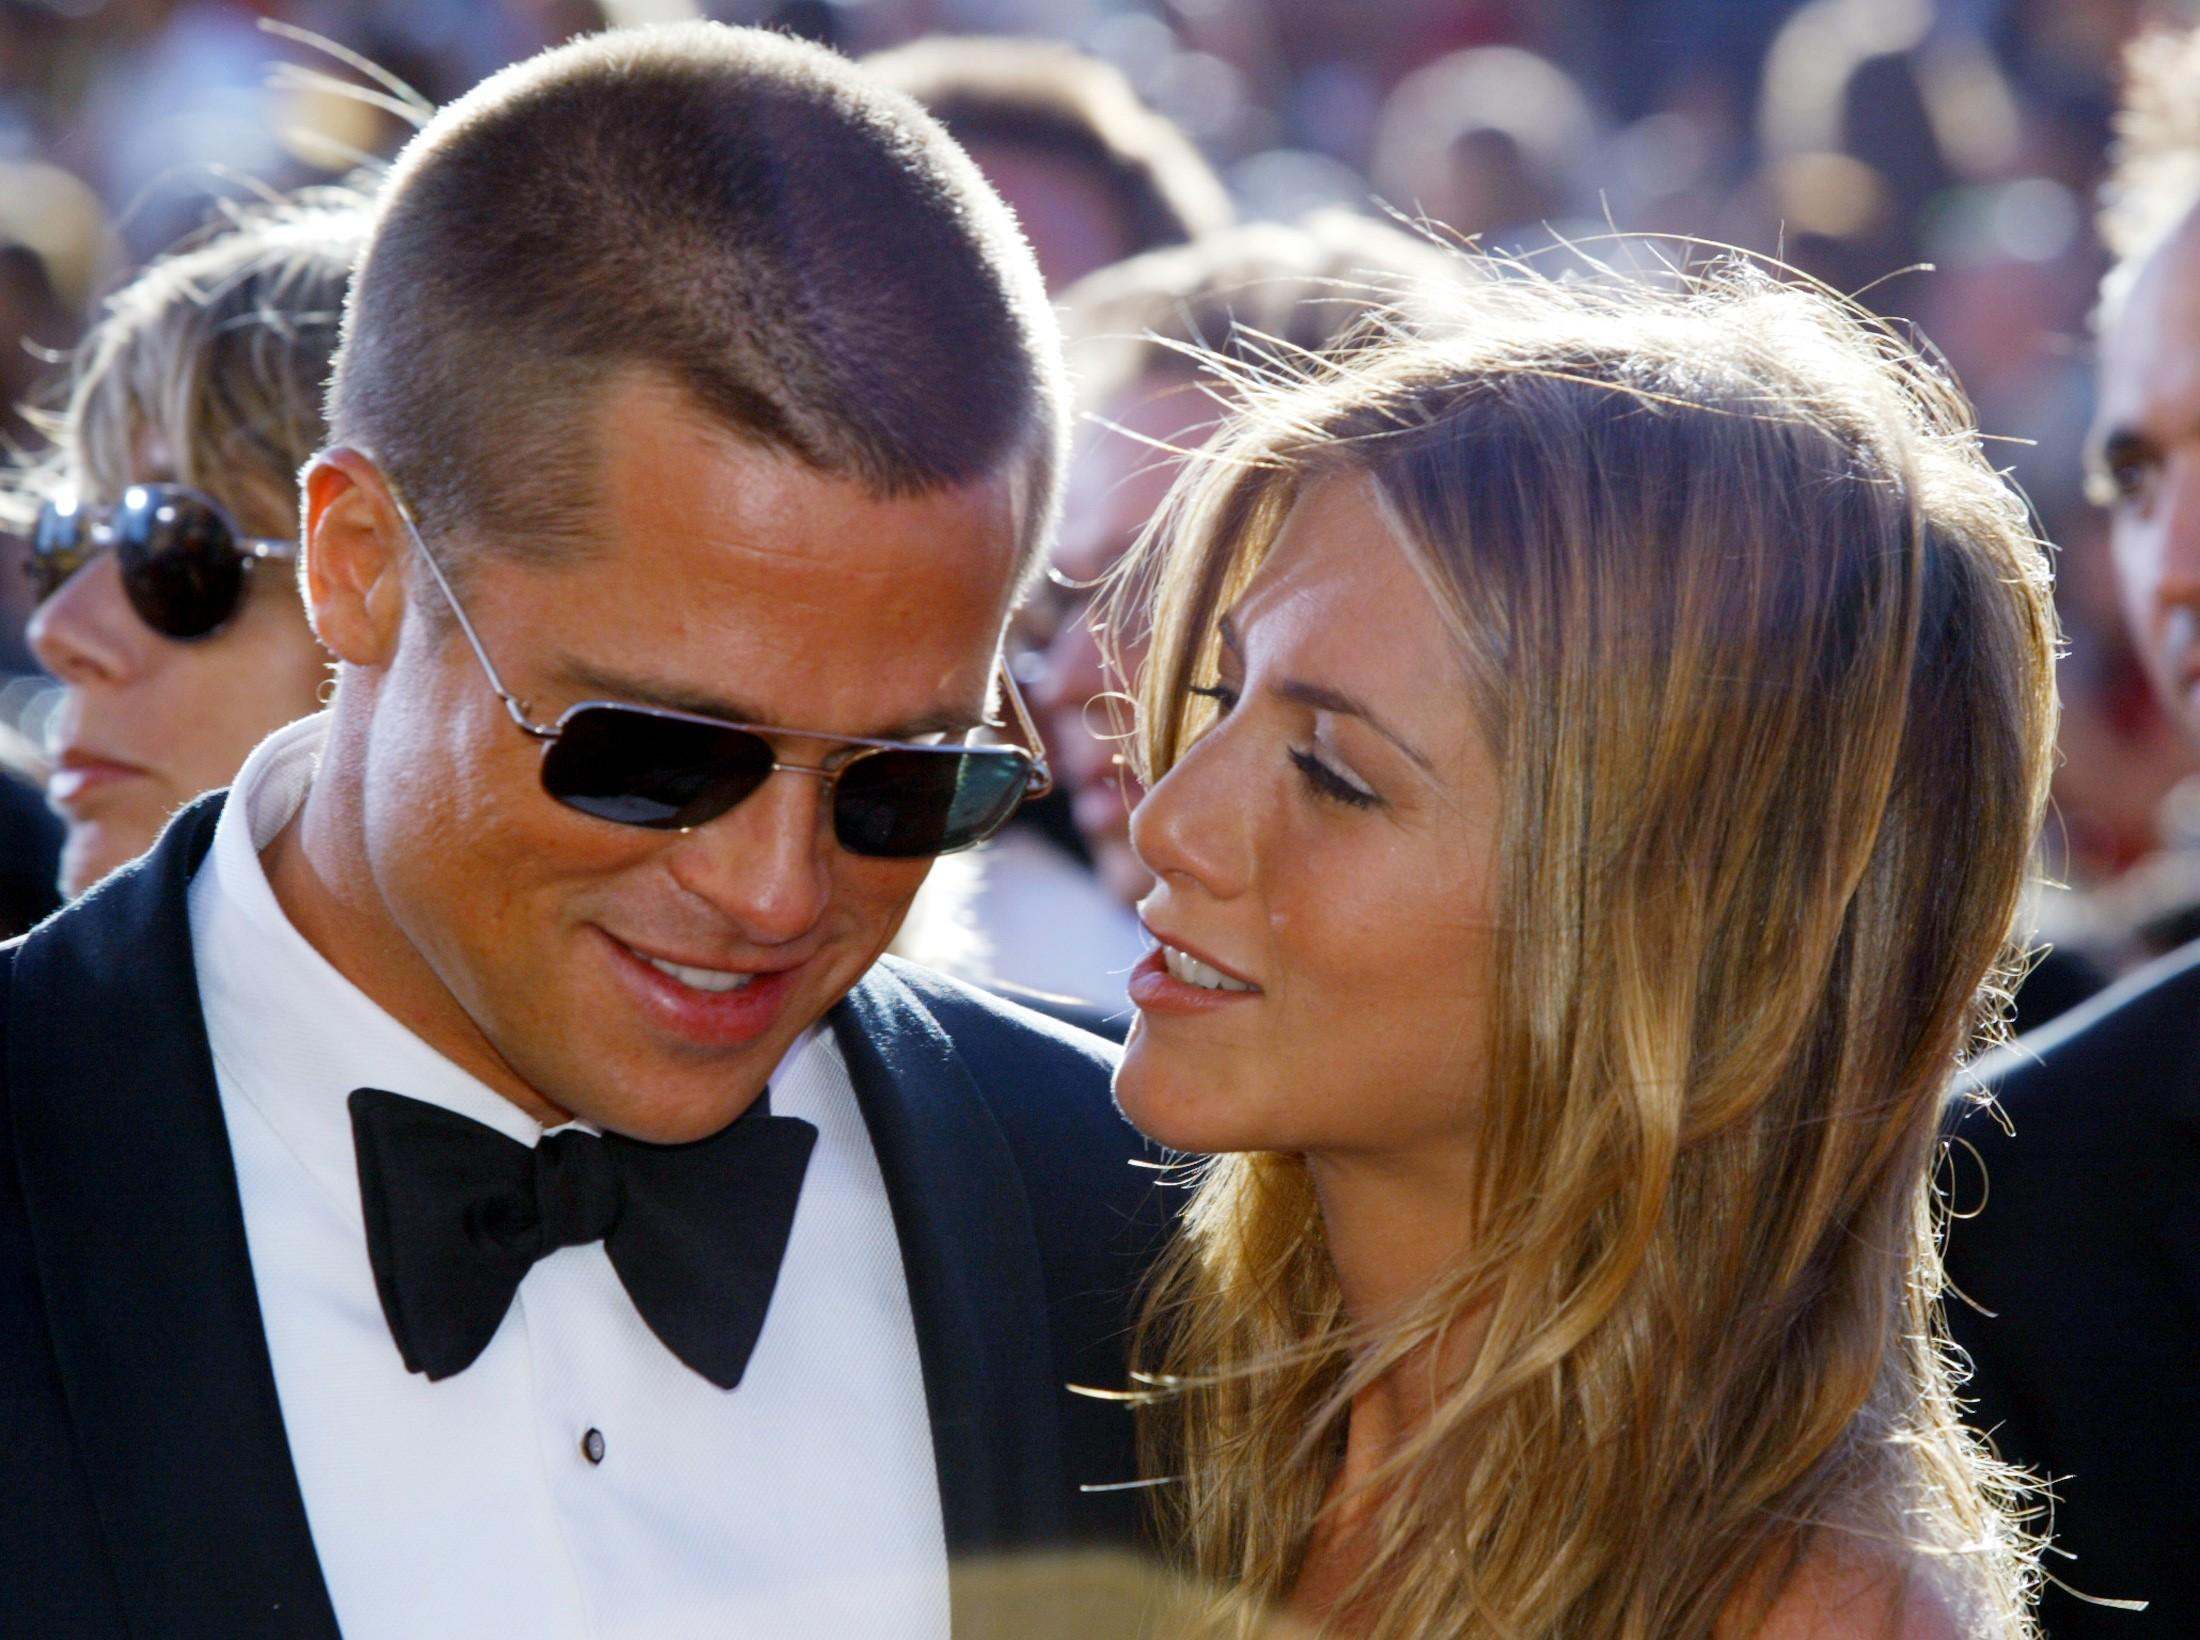 File photo of Brad Pitt and Jennifer Aniston at the 56th annual Primetime Emmy Awards in Los Angeles